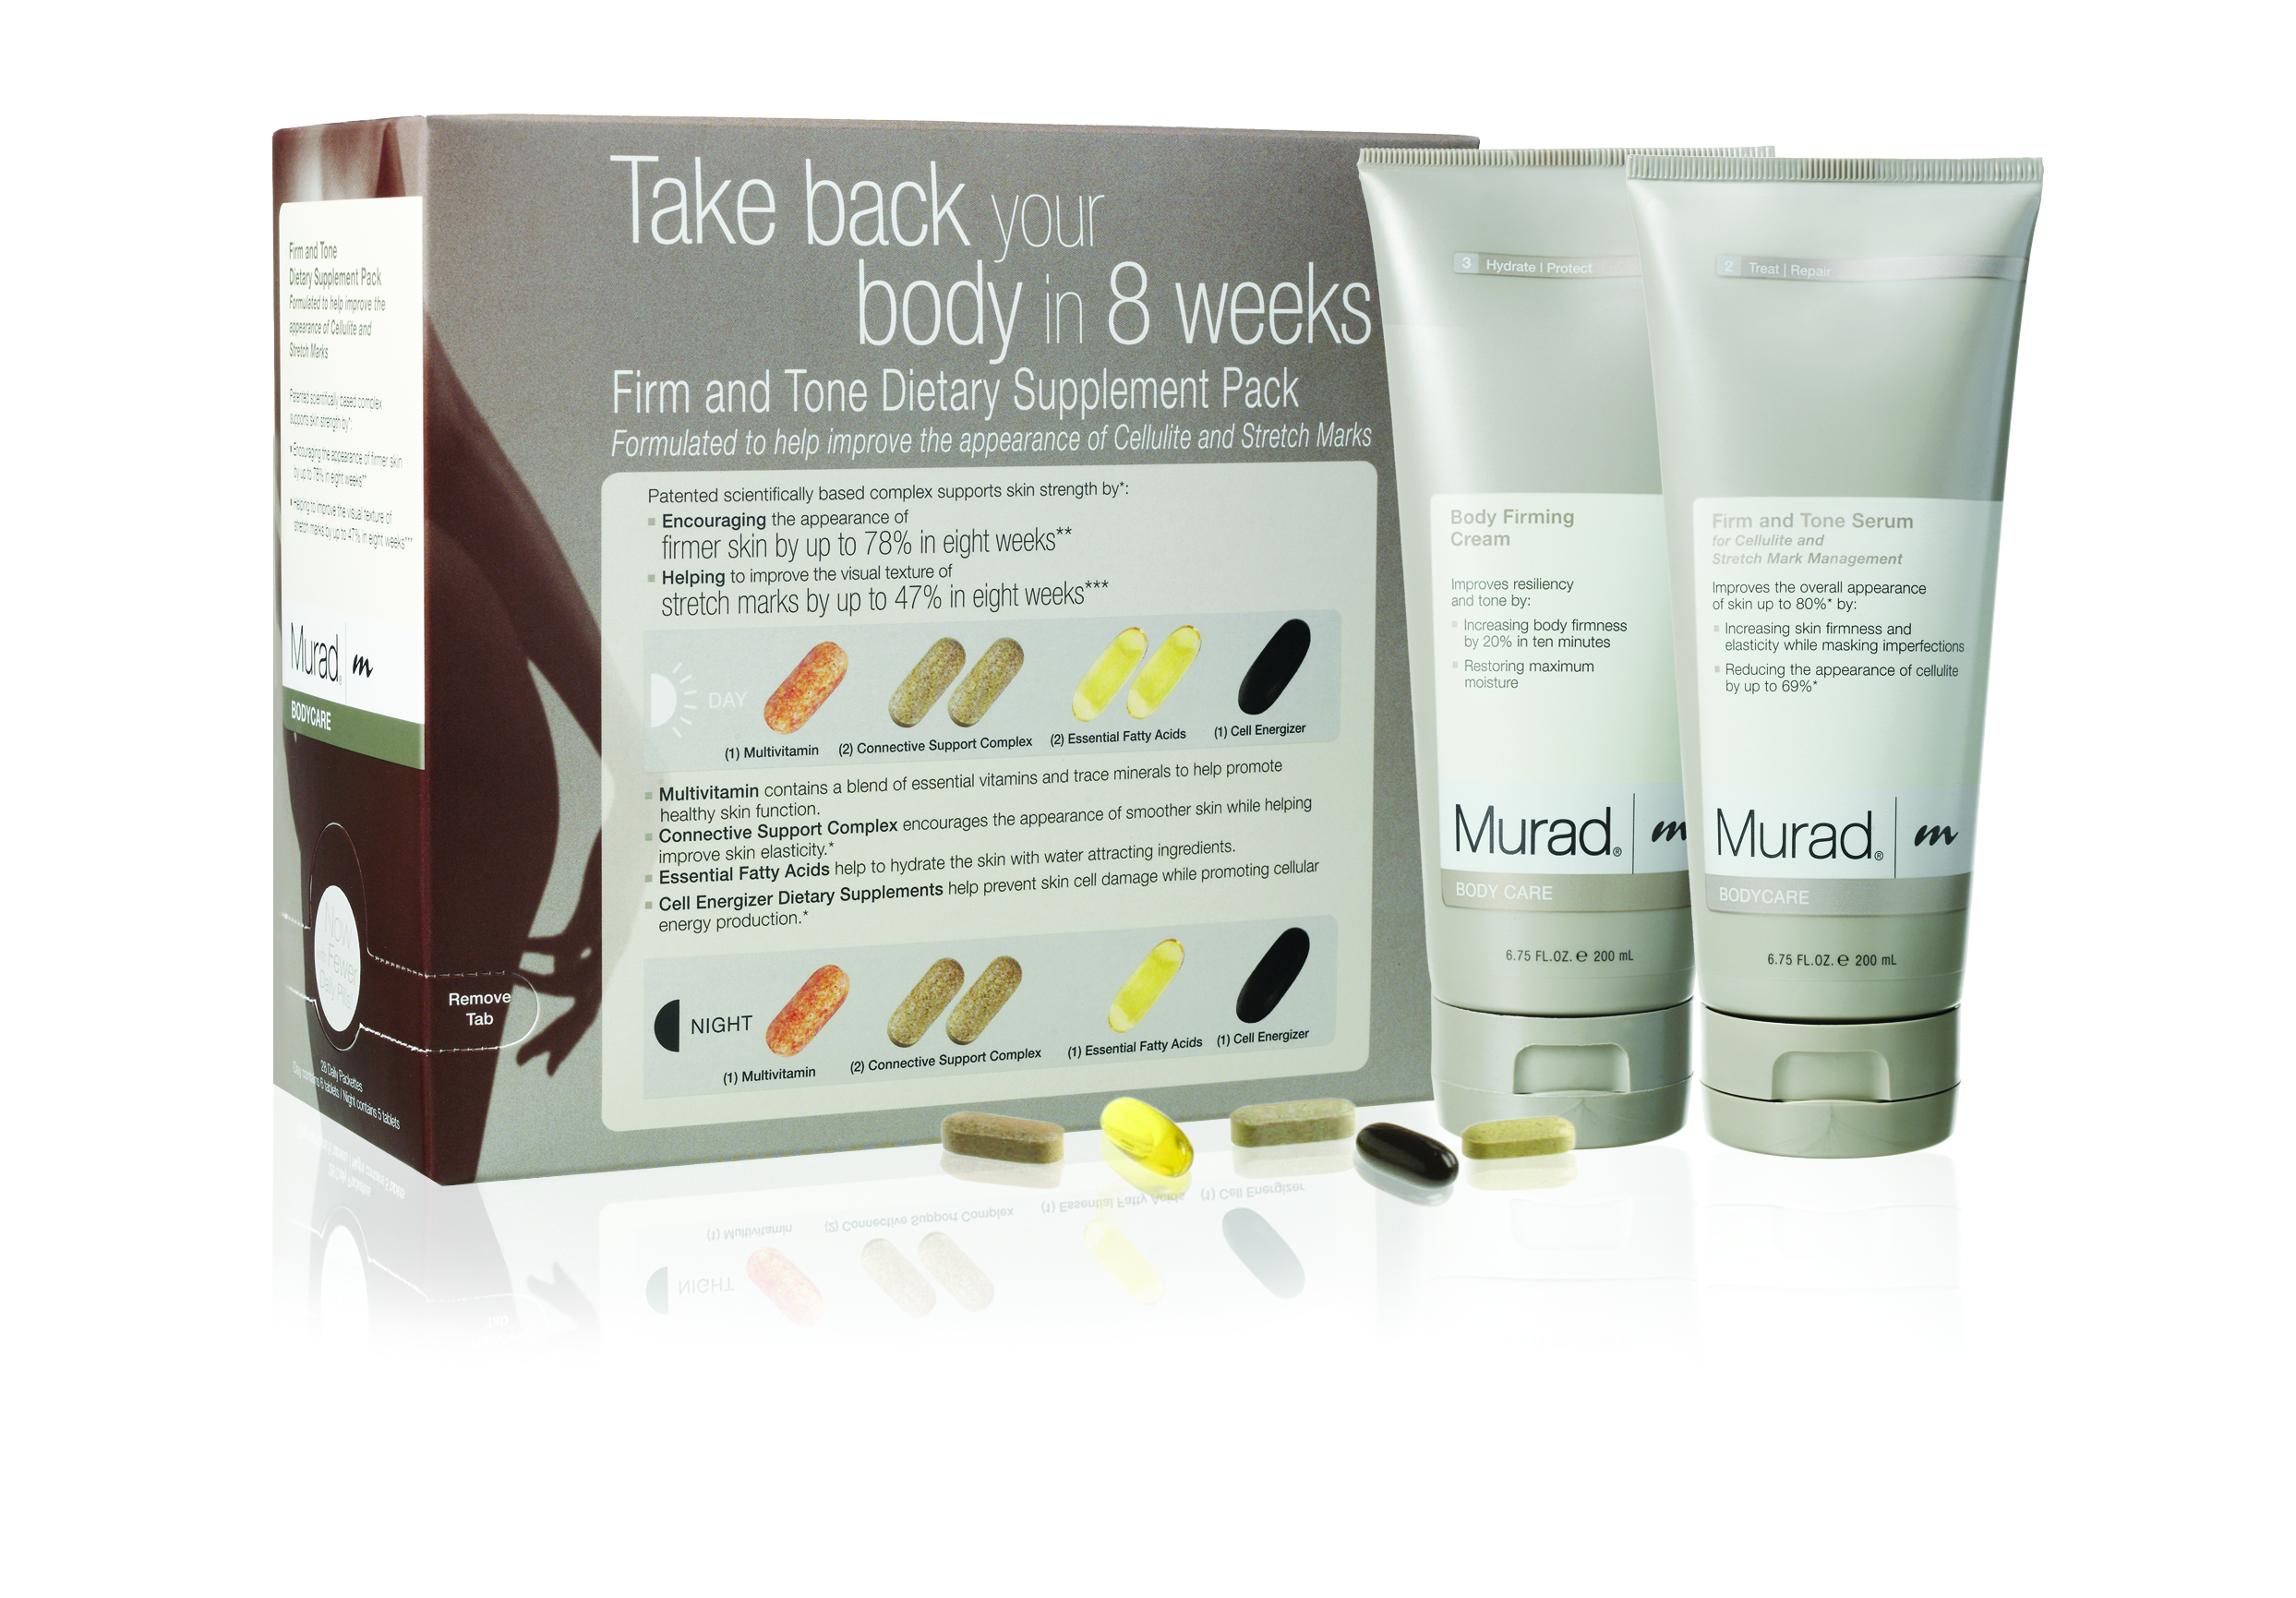 Dr Murad Firm and Tone Dietary Supplement Pack